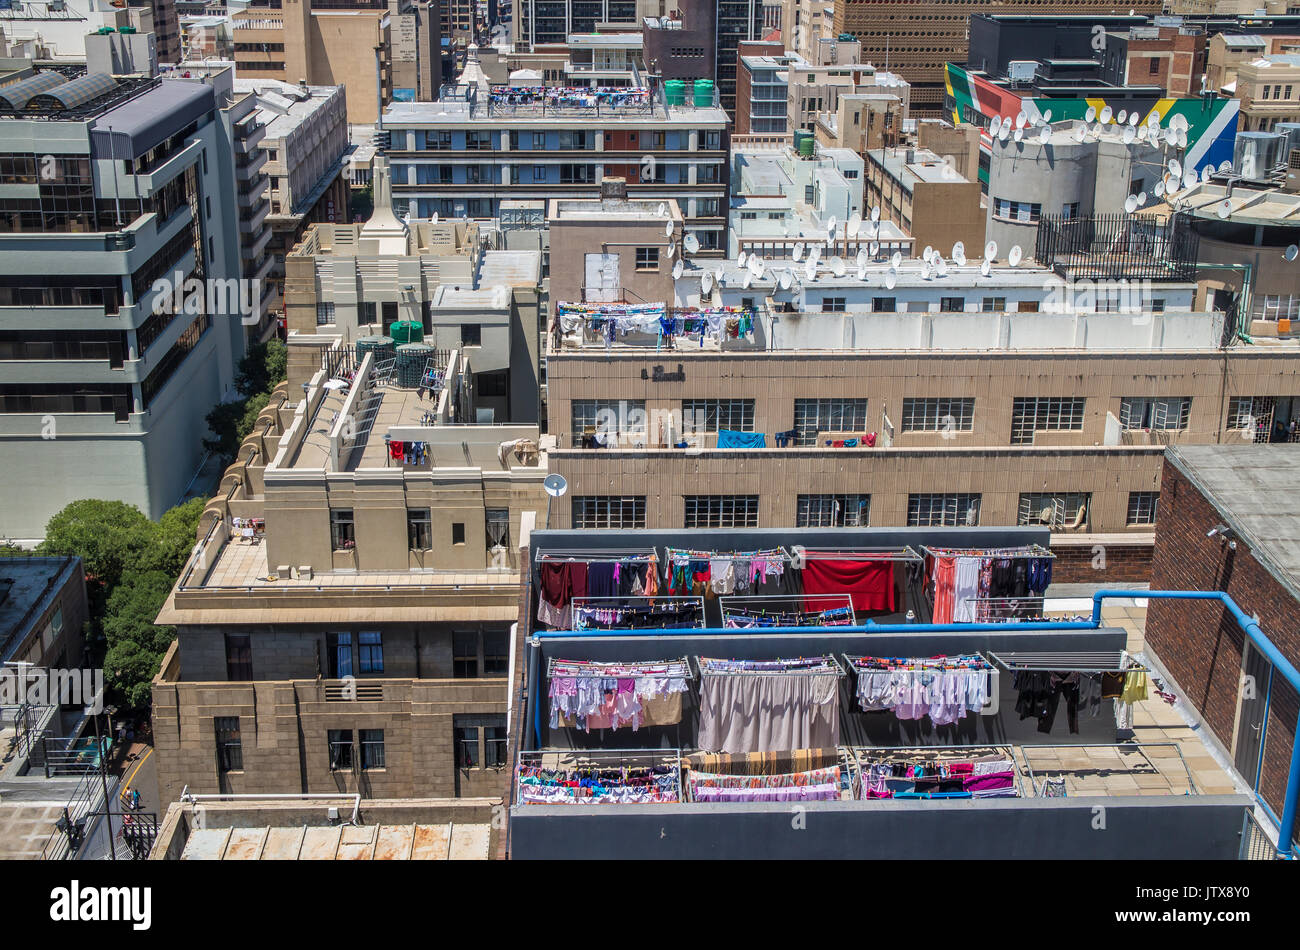 Laundry of inner city dwellers hung out on a sunny day on a myriad washing lines on apartment building rooftops in central Johannesburg - Stock Image